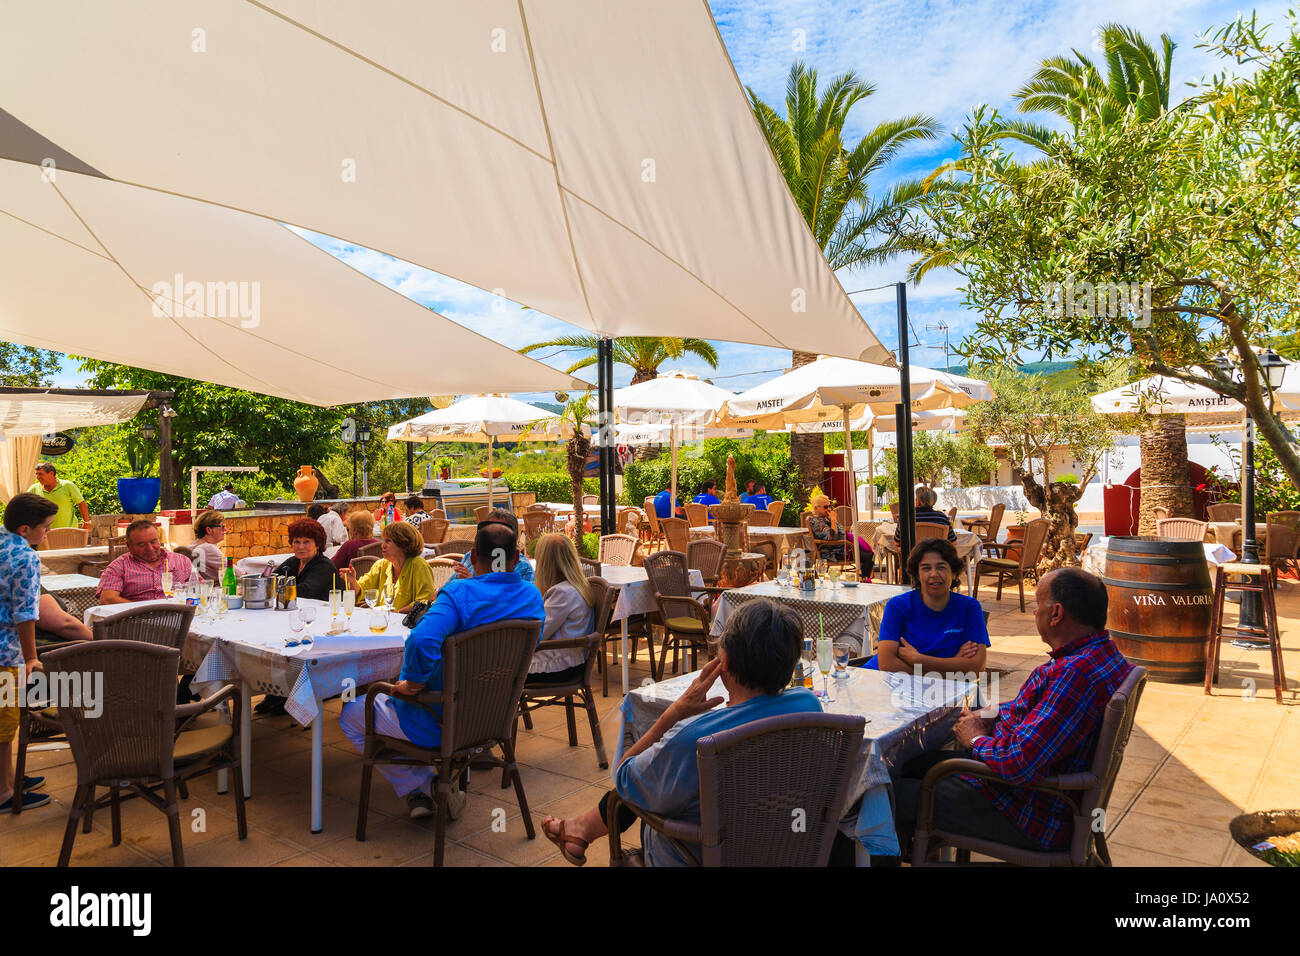 ibiza island, spain - may 18, 2017: people dining in garden of